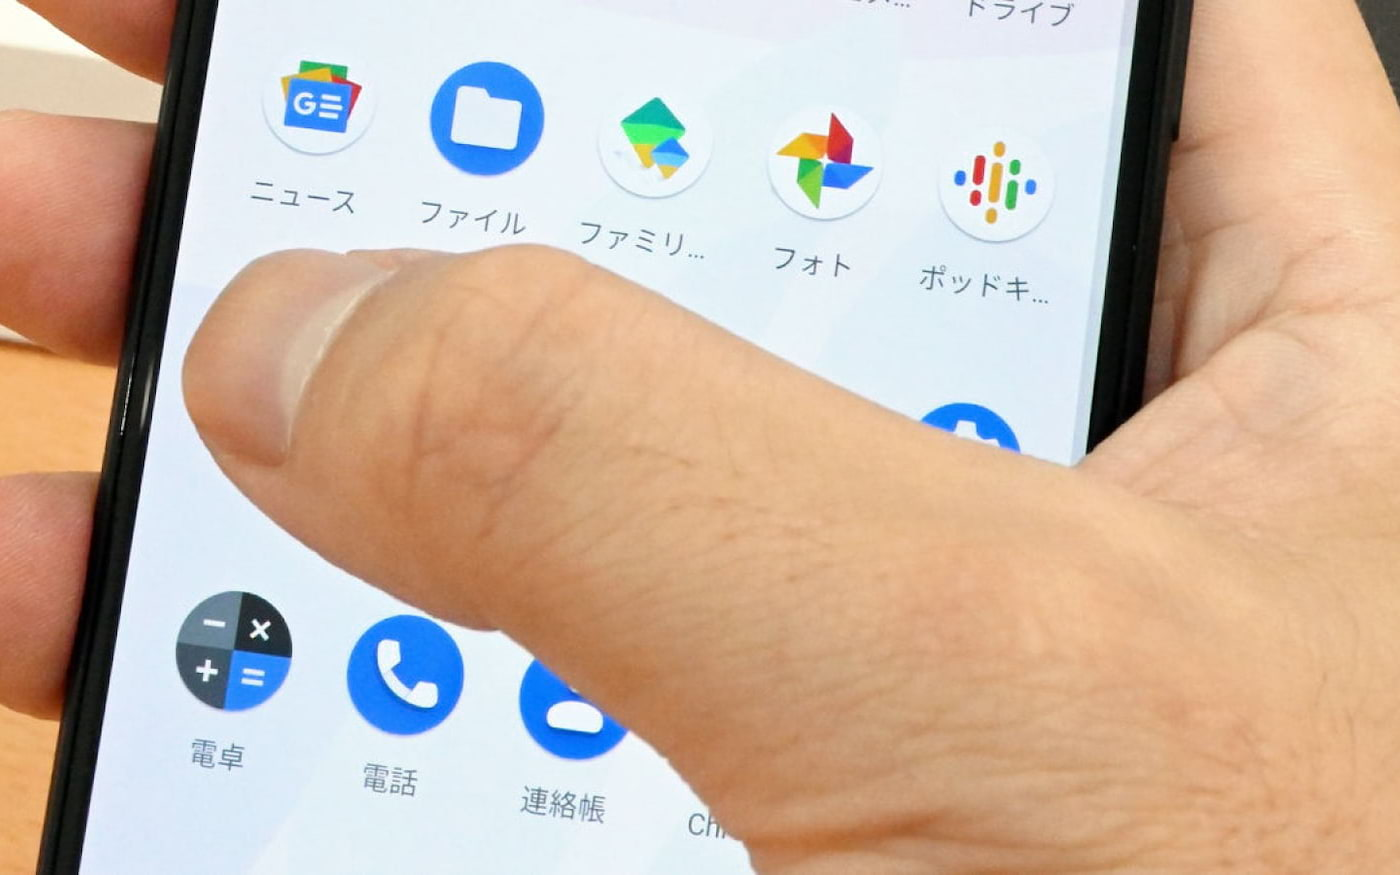 Google clona 3D touch da Apple usando apenas software